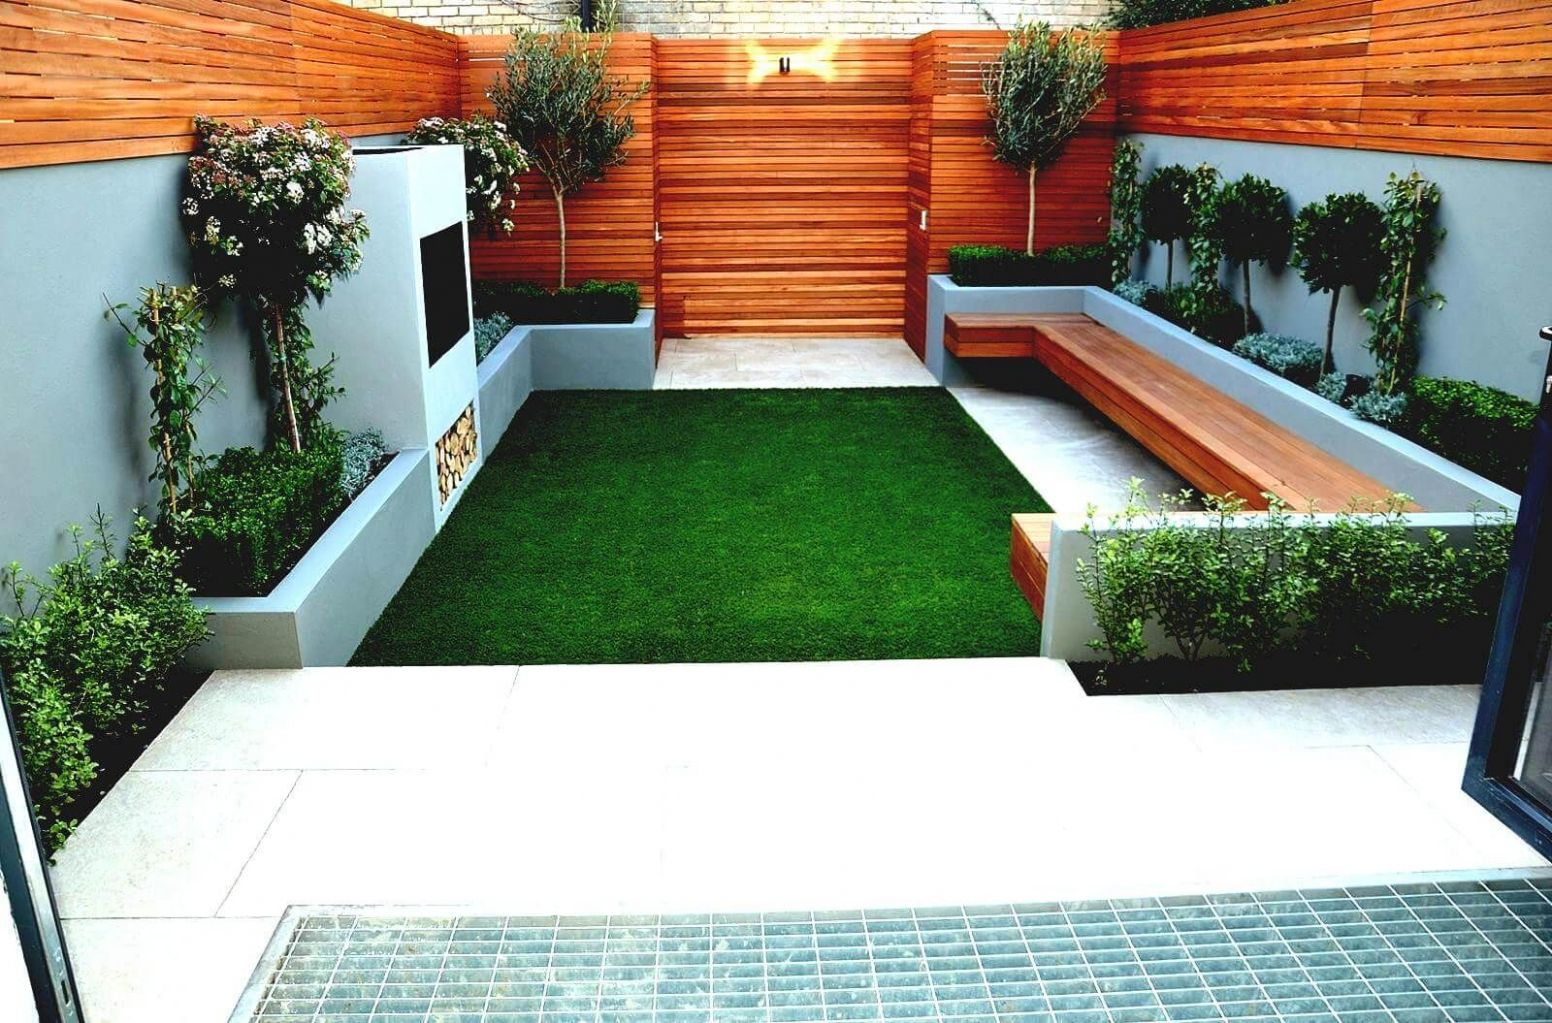 8 Best Front Garden Design Ideas in UK (With images) | Small ..